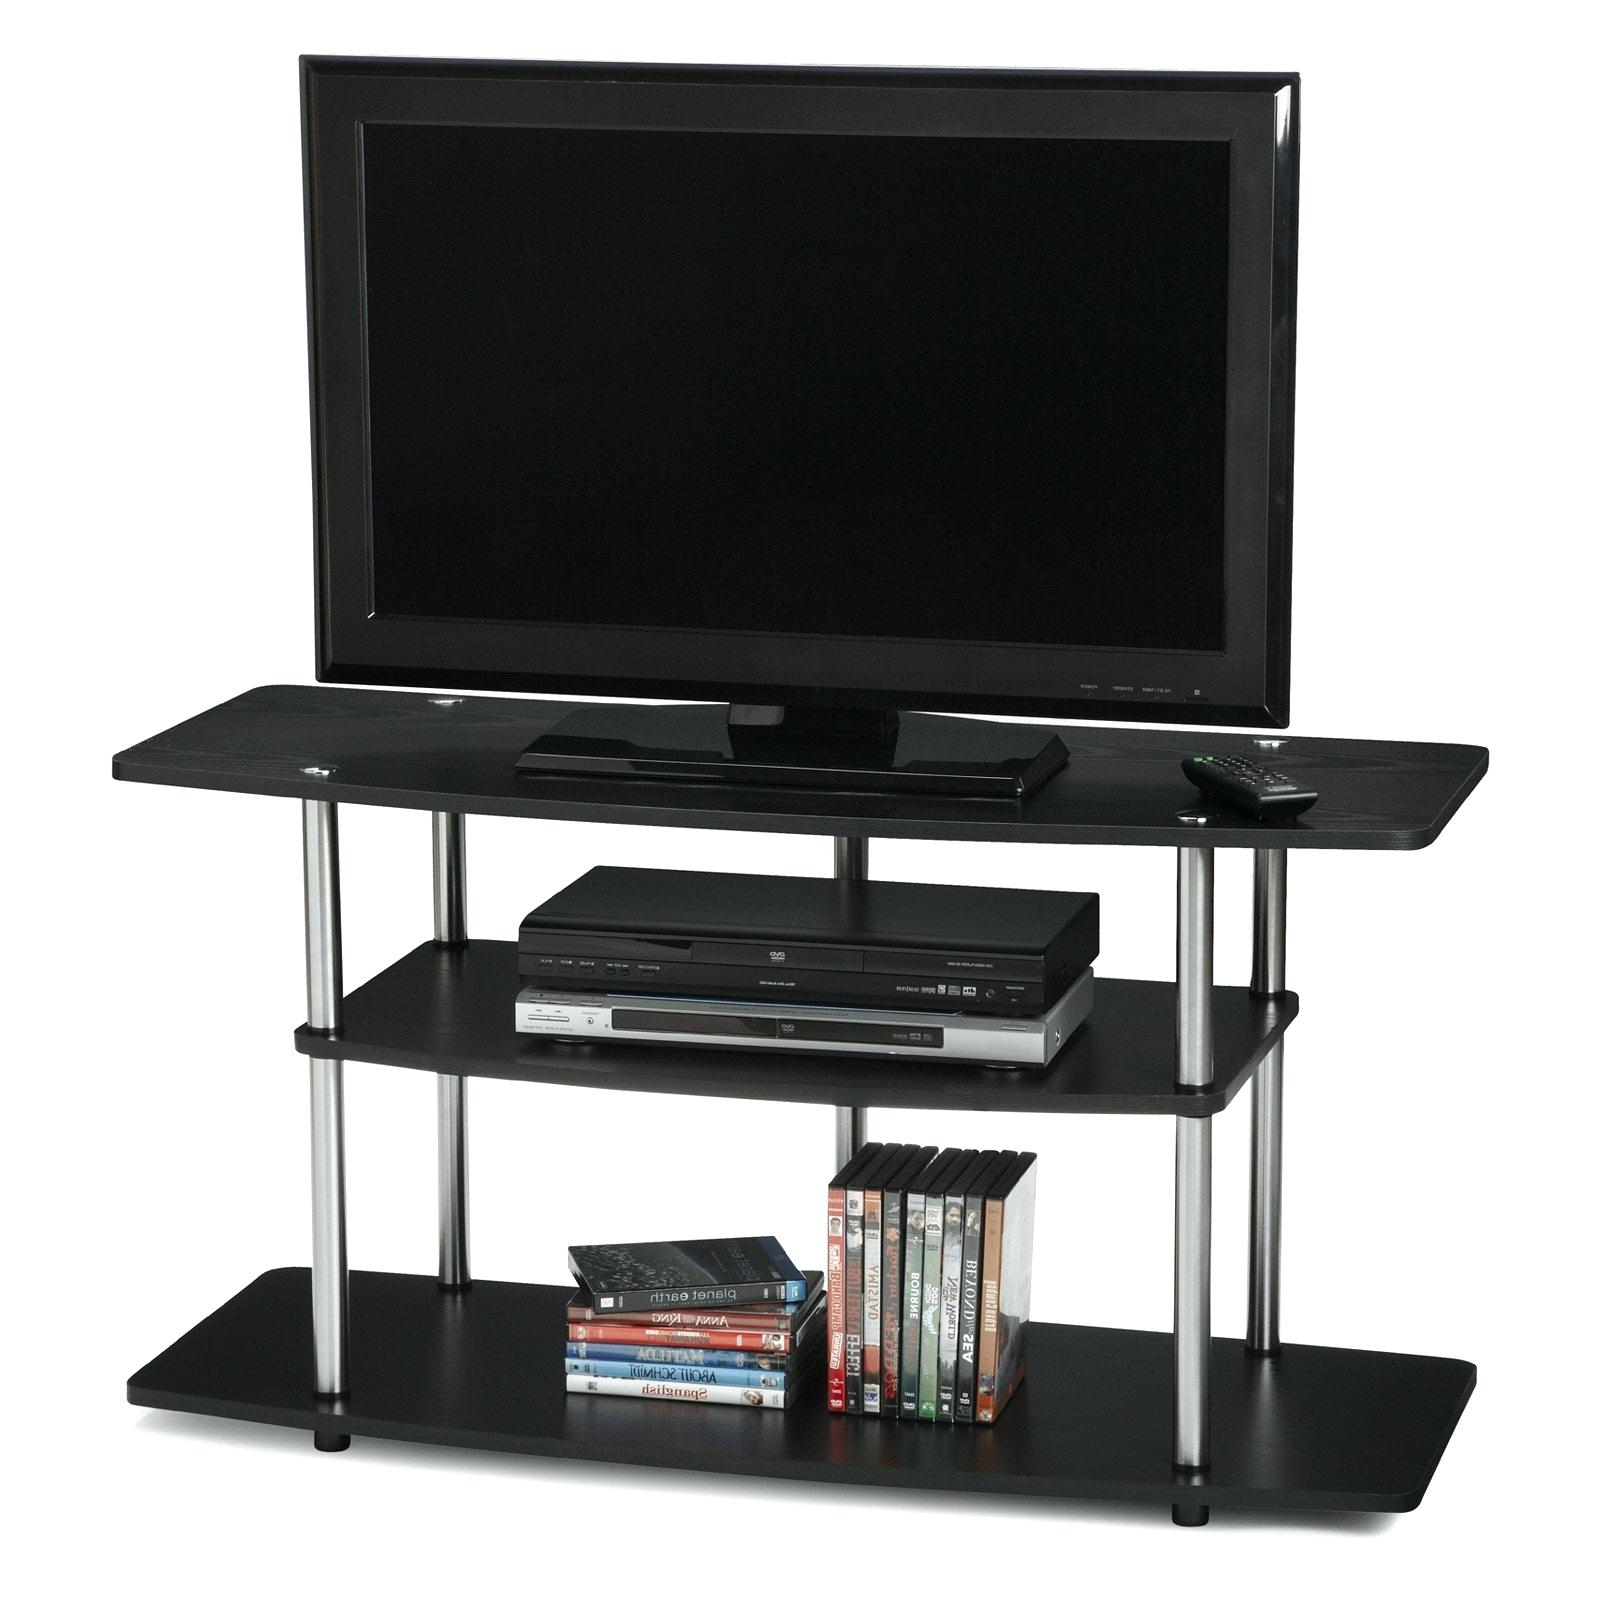 Most Up To Date Tall Skinny Tv Stand Thin Stands For Flat Screens Ultra Narrow Throughout Narrow Tv Stands For Flat Screens (View 15 of 20)